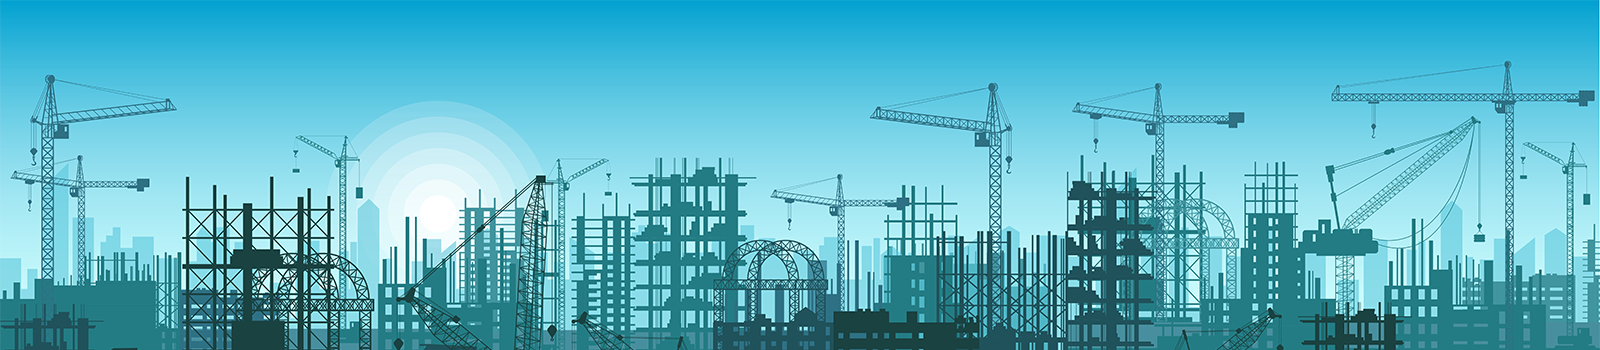 Construction-Background.png